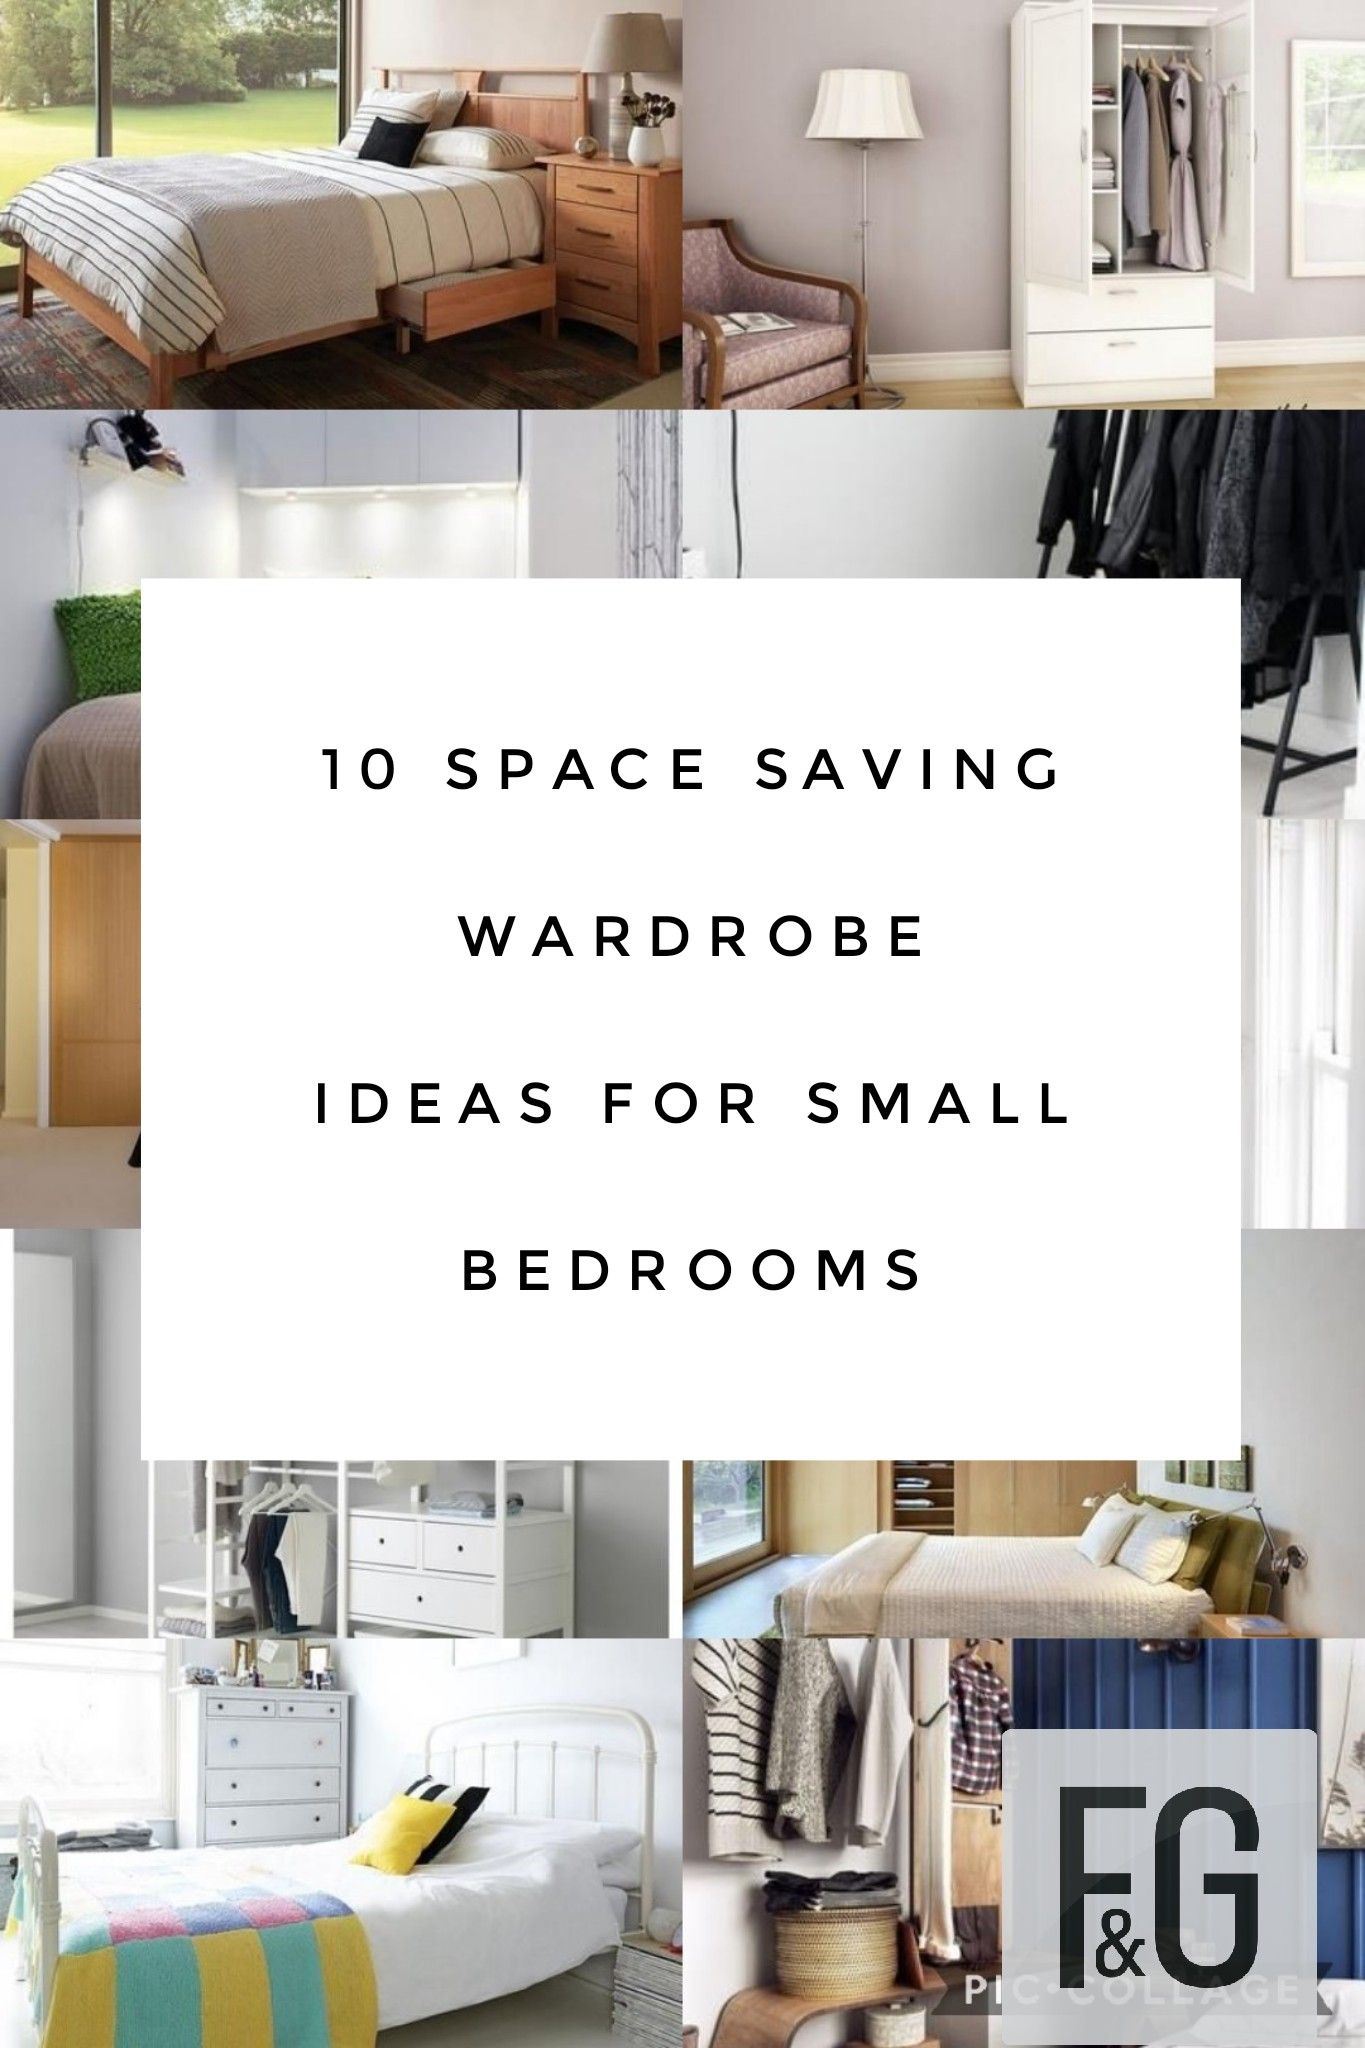 10 Space Saving Wardrobe Ideas For Small Bedrooms Small Room